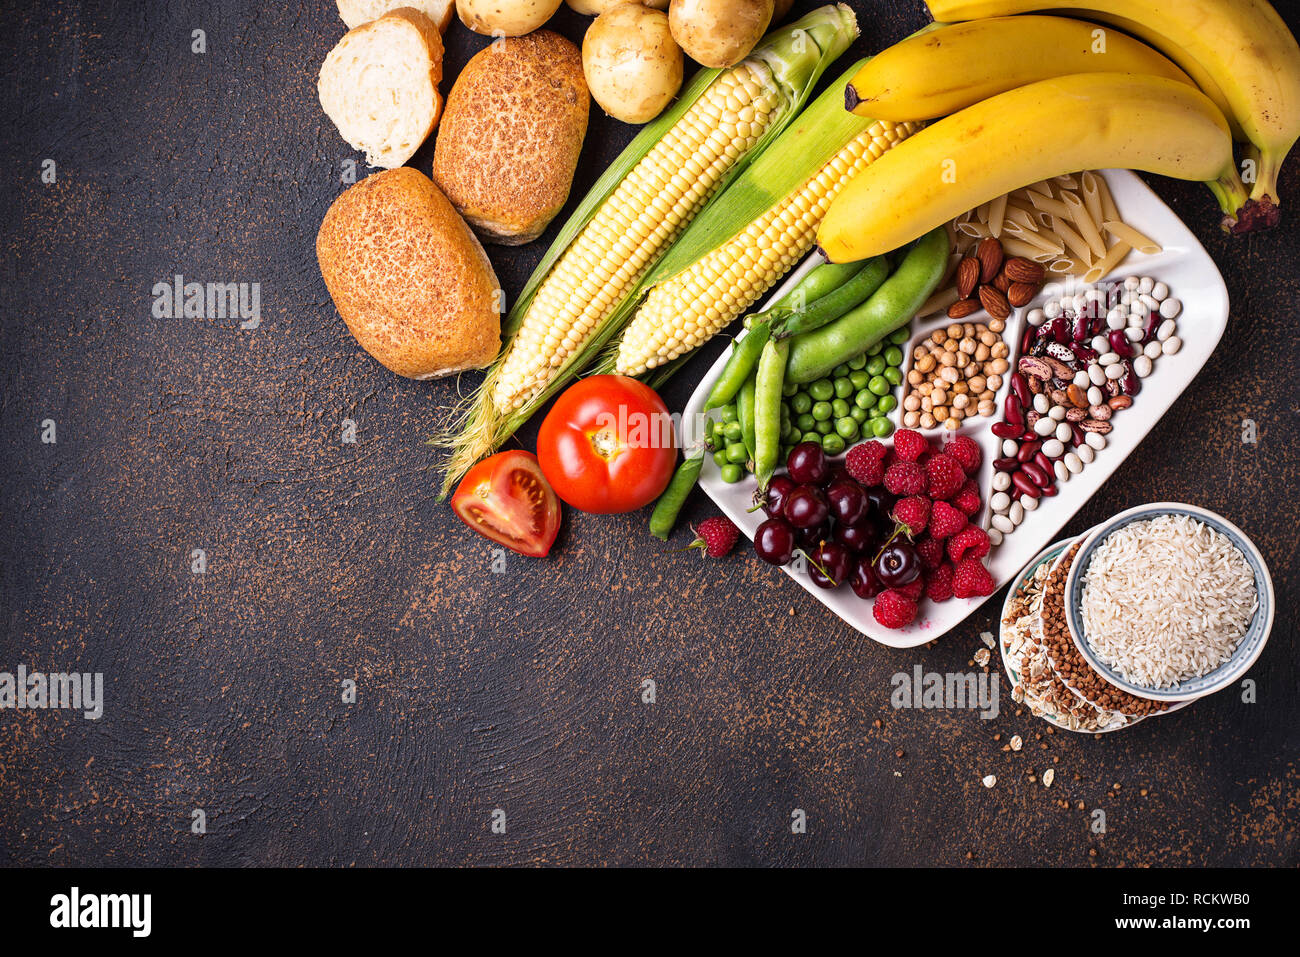 Healthy products sources of carbohydrates. - Stock Image